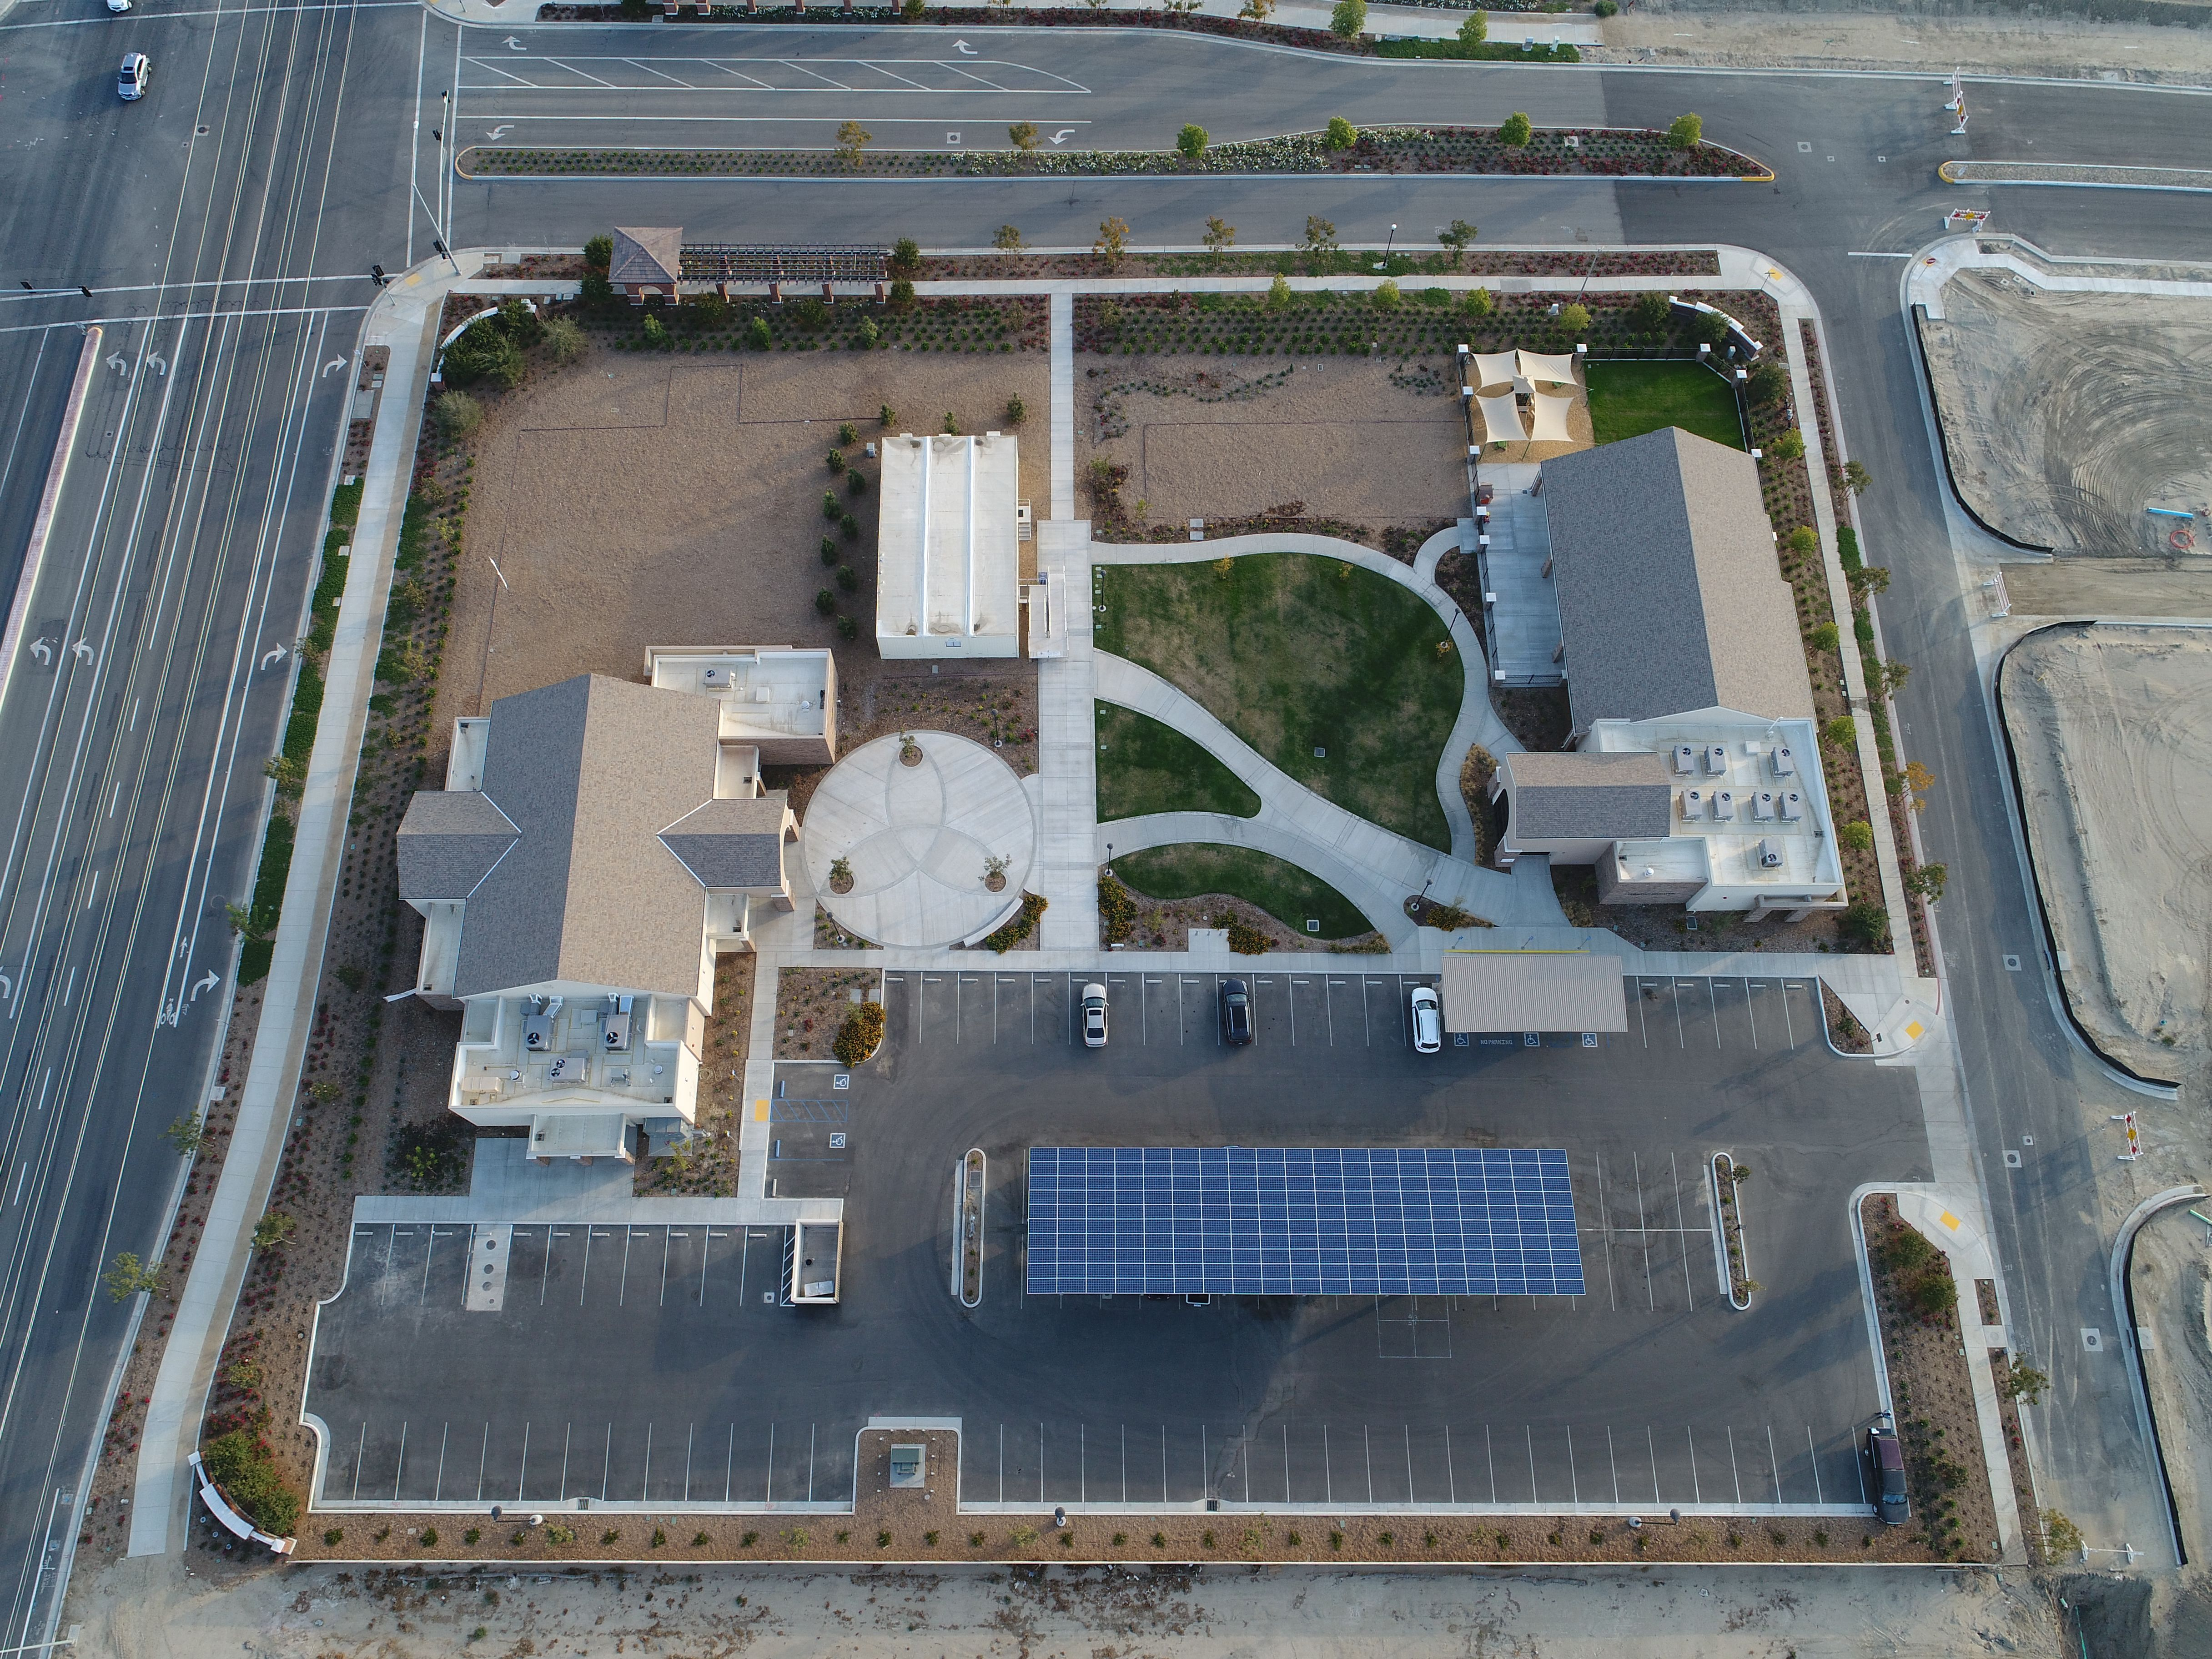 Truck Bed Studios S Aerial Photography Service For A C Electric Company S Solar Installation For Trinity Aerial Photography Solar Installation Renewable Energy